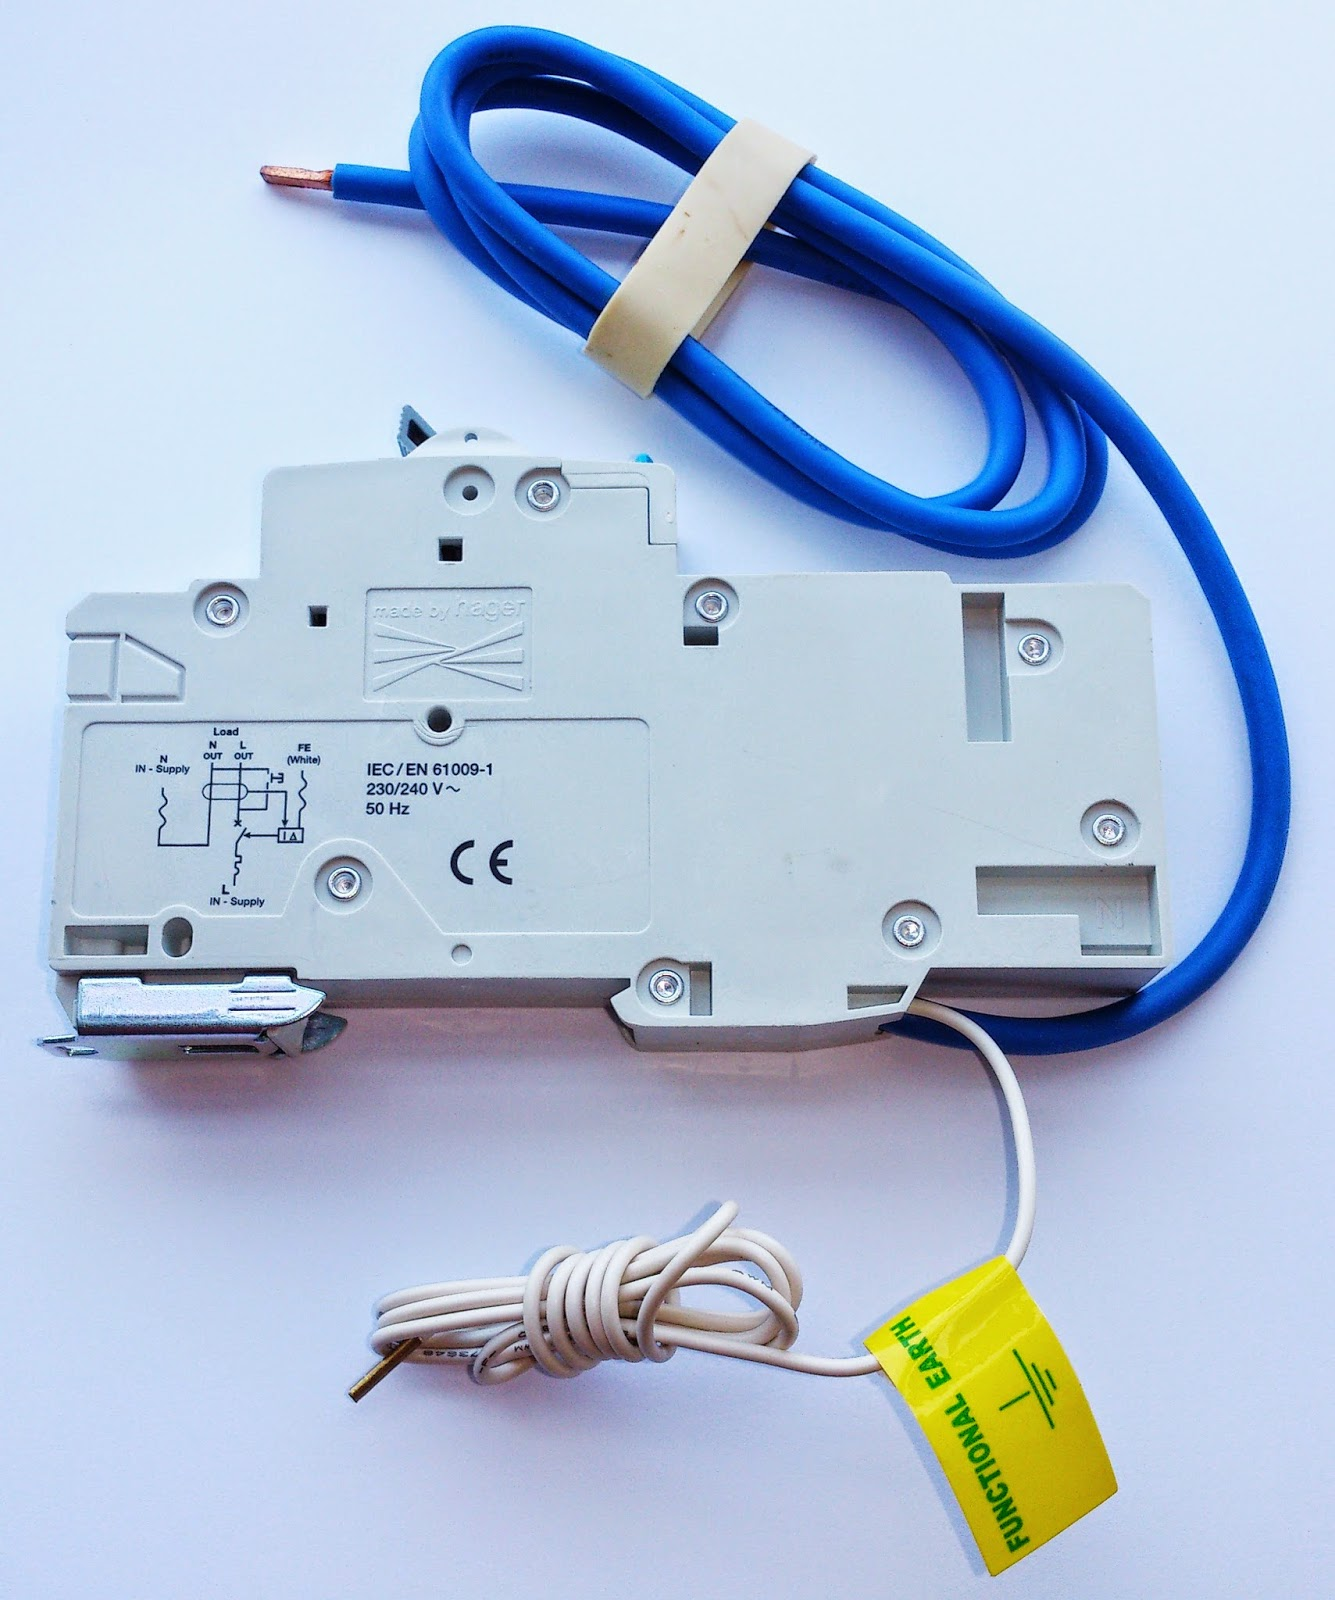 Diyer Ac Device Fuse Mcb Mccb Rcd Rccb Rcbo Wiring Diagram According To Hong Kongs Code Of Practice For The Electricity Regulations 2003 Edition Should Be Used In Wall Socket Circuit